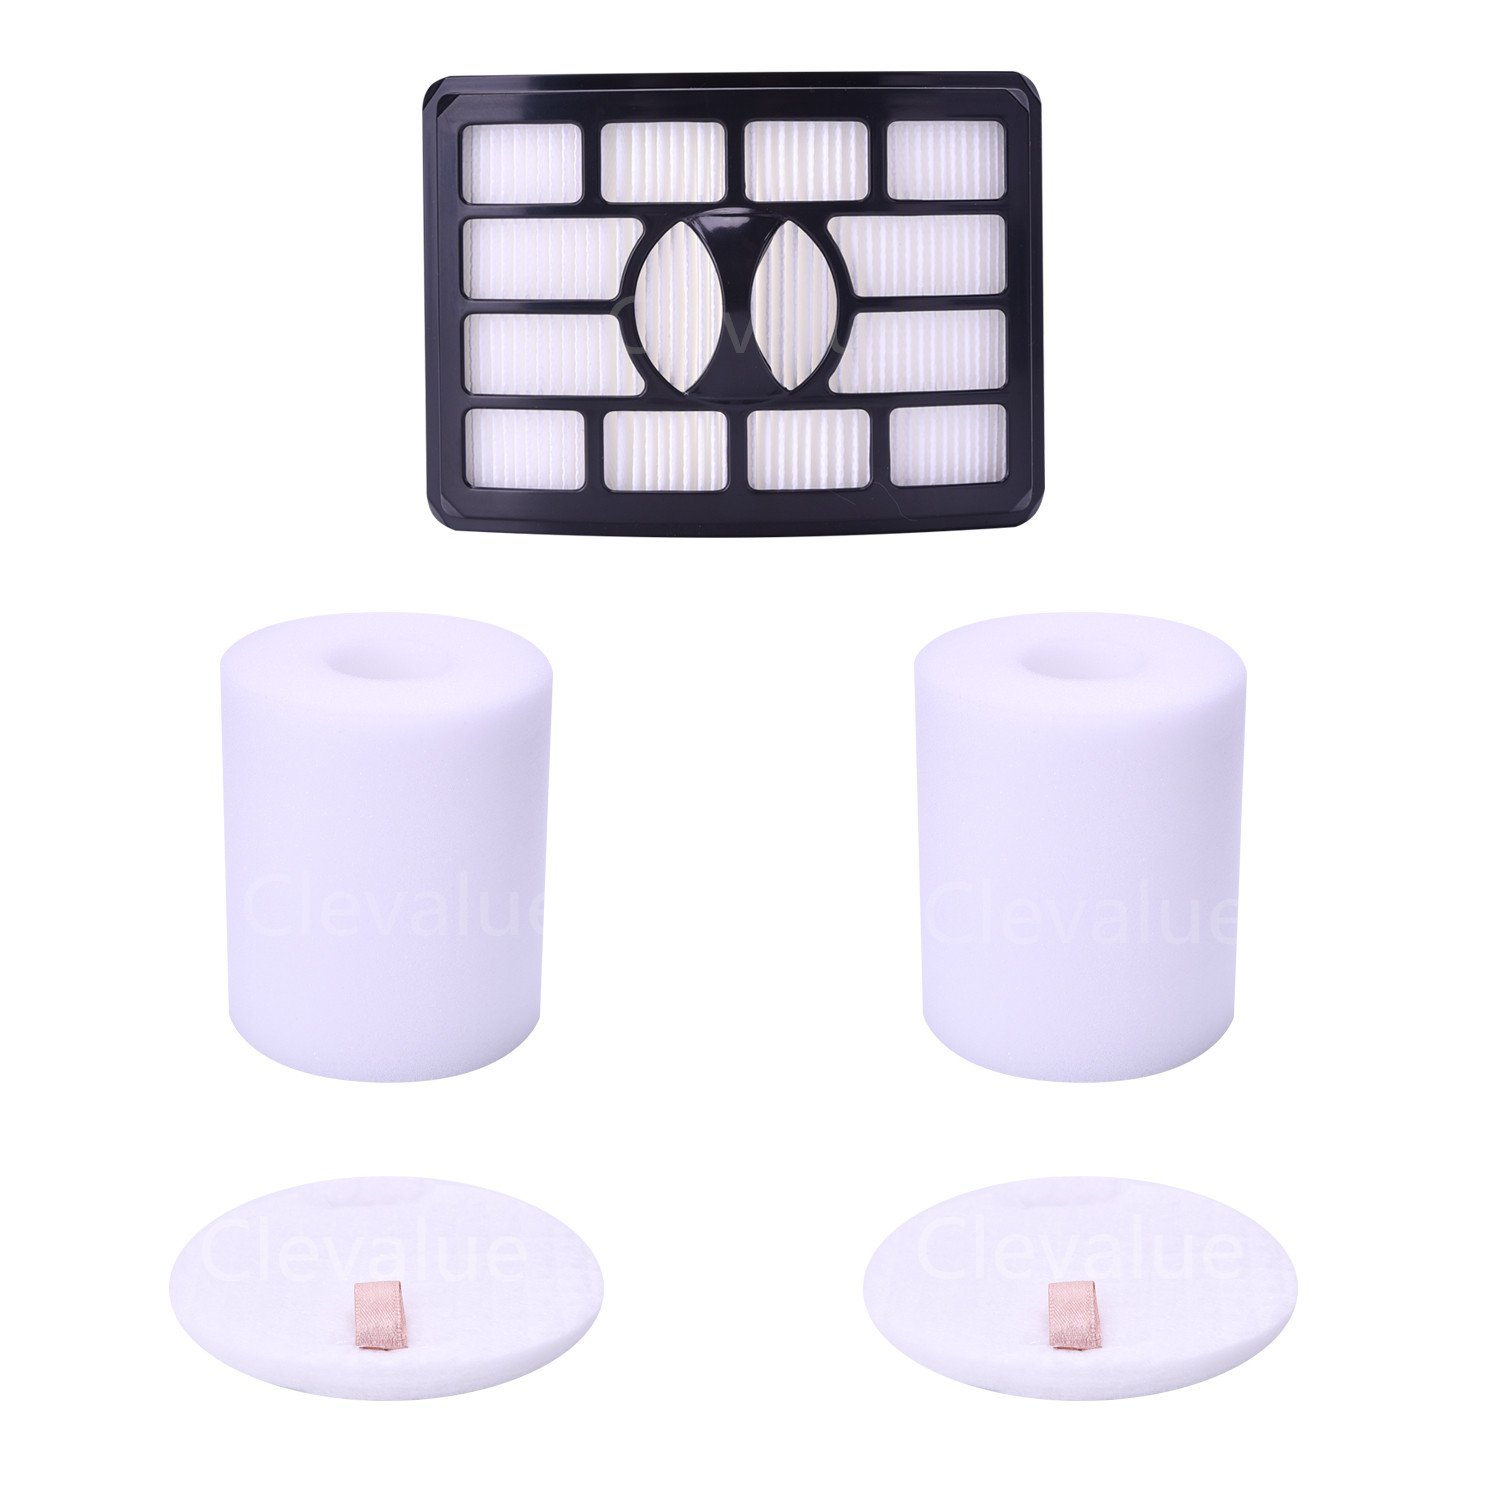 Replacement Filters for Shark Rotator Pro Lift-away NV500, NV501, NV502, NV503, NV505, NV510, NV520, NV552, UV560, Xff500 Xhf500 (Not Fit NV650,NV680,NV755 Series) (2 Foam Filter and 1 Hepa Filter) by Clevalue